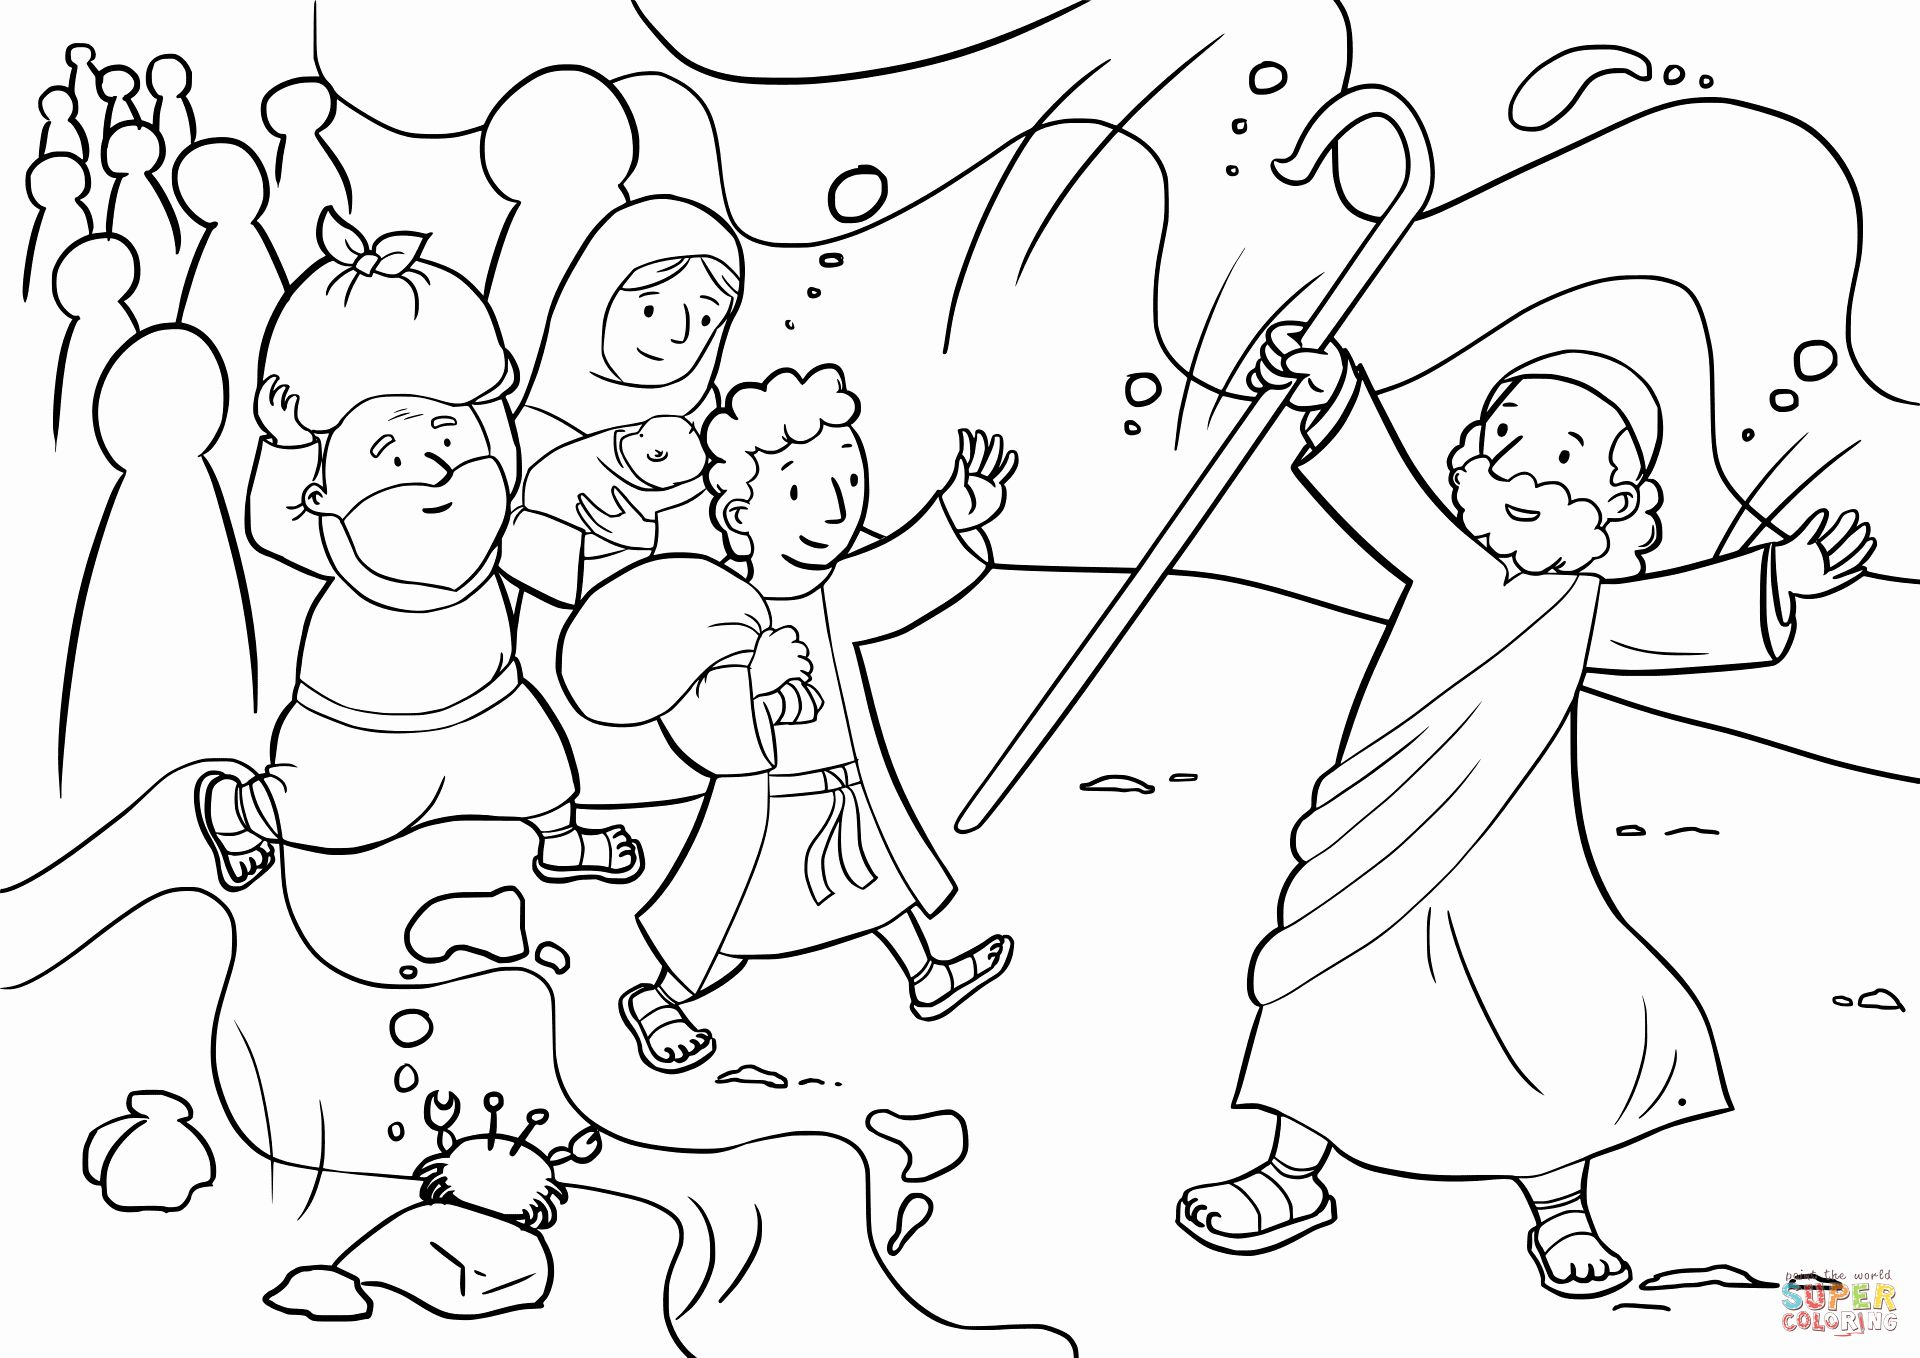 32 Moses Parting The Red Sea Coloring Page In 2020 Crossing The